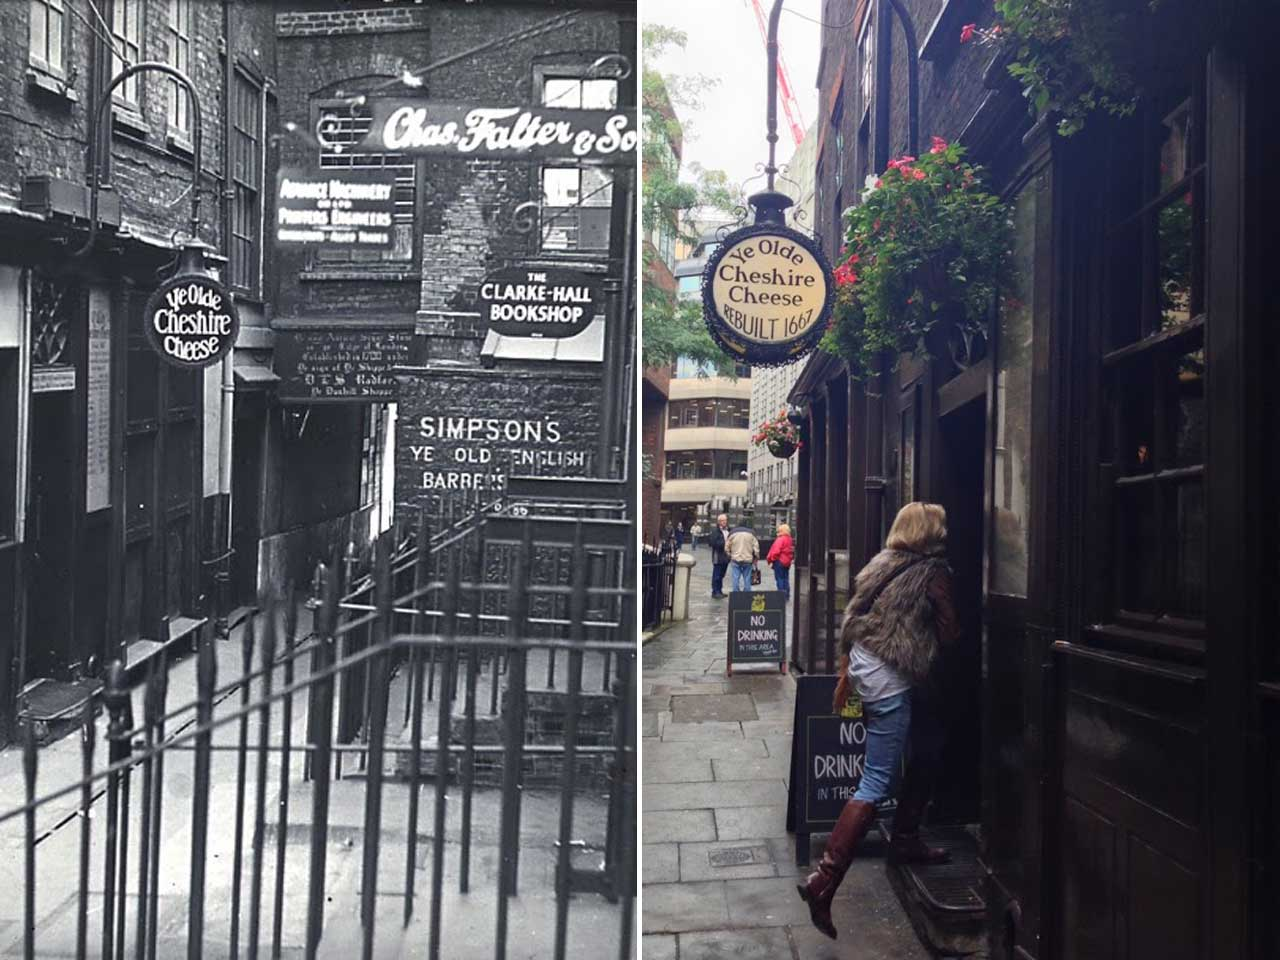 Ye Olde Cheshire Cheese, Fleet Street, London